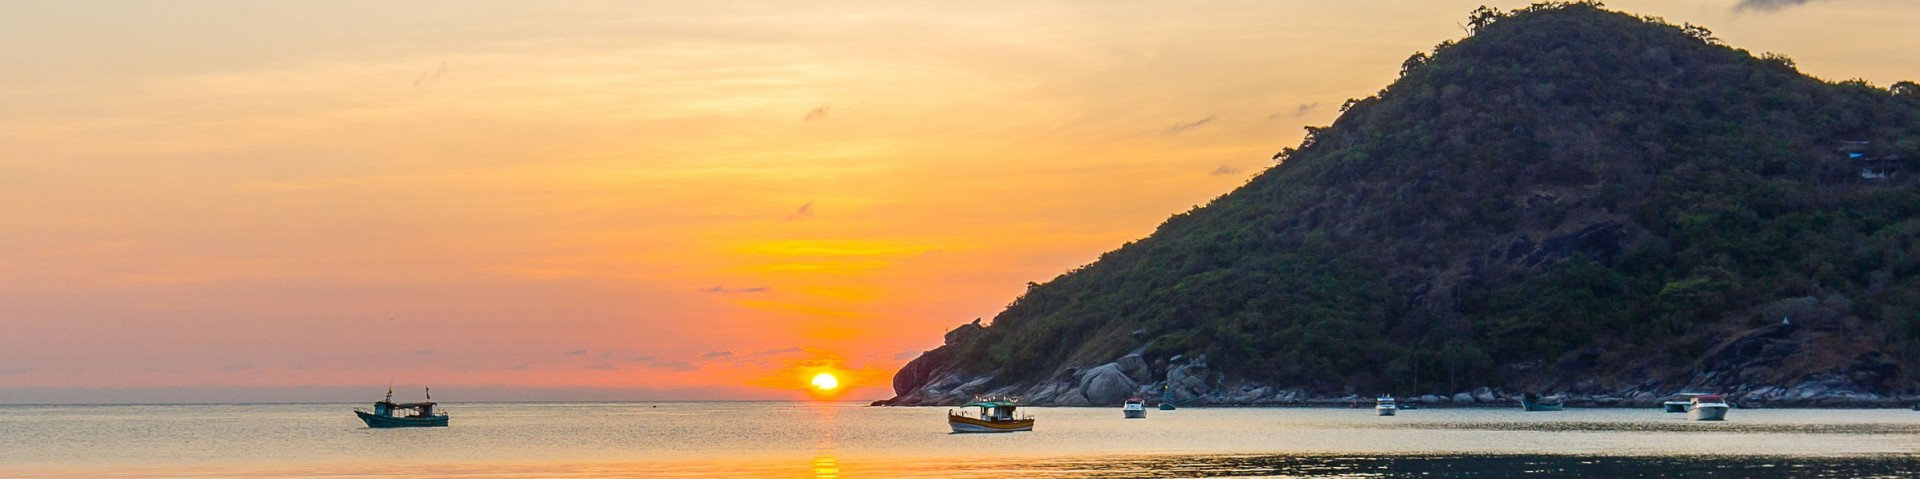 Ao Thong Nai Pan Noi in Thailand